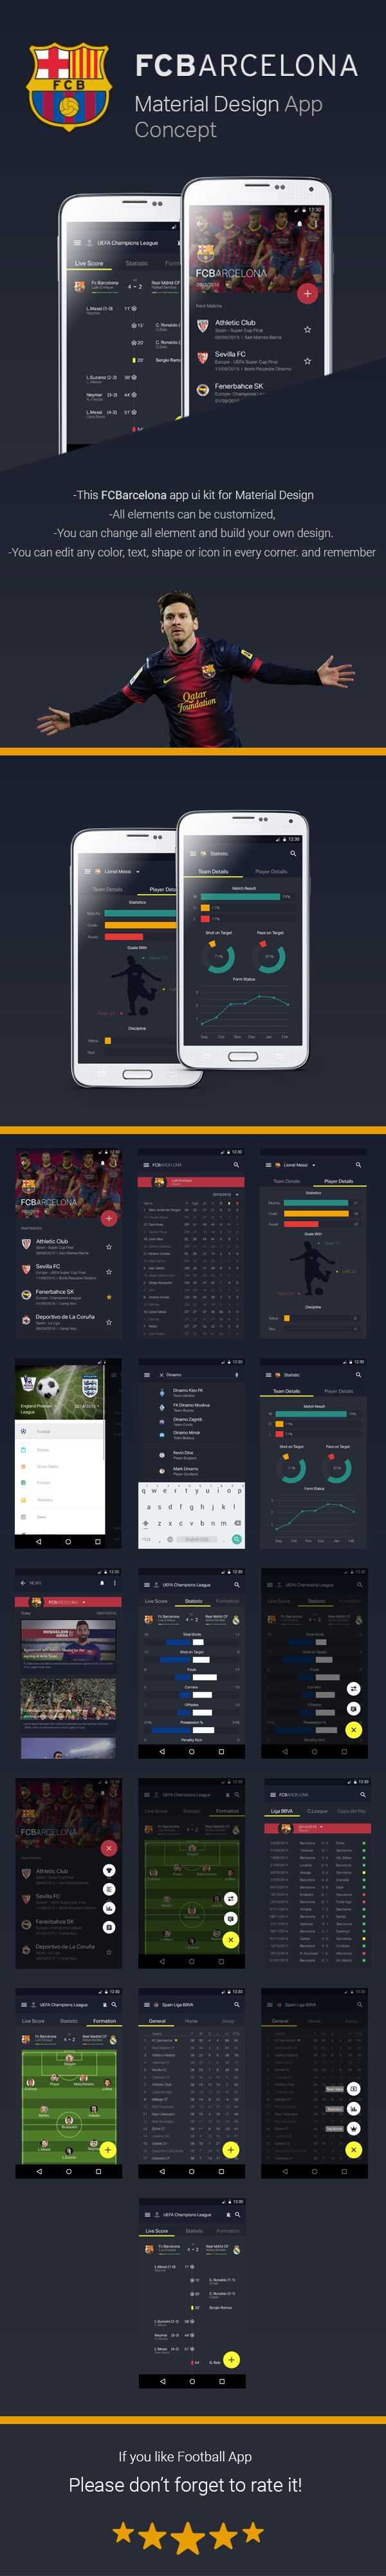 FCBarcelona Material Design App Concept on Behance